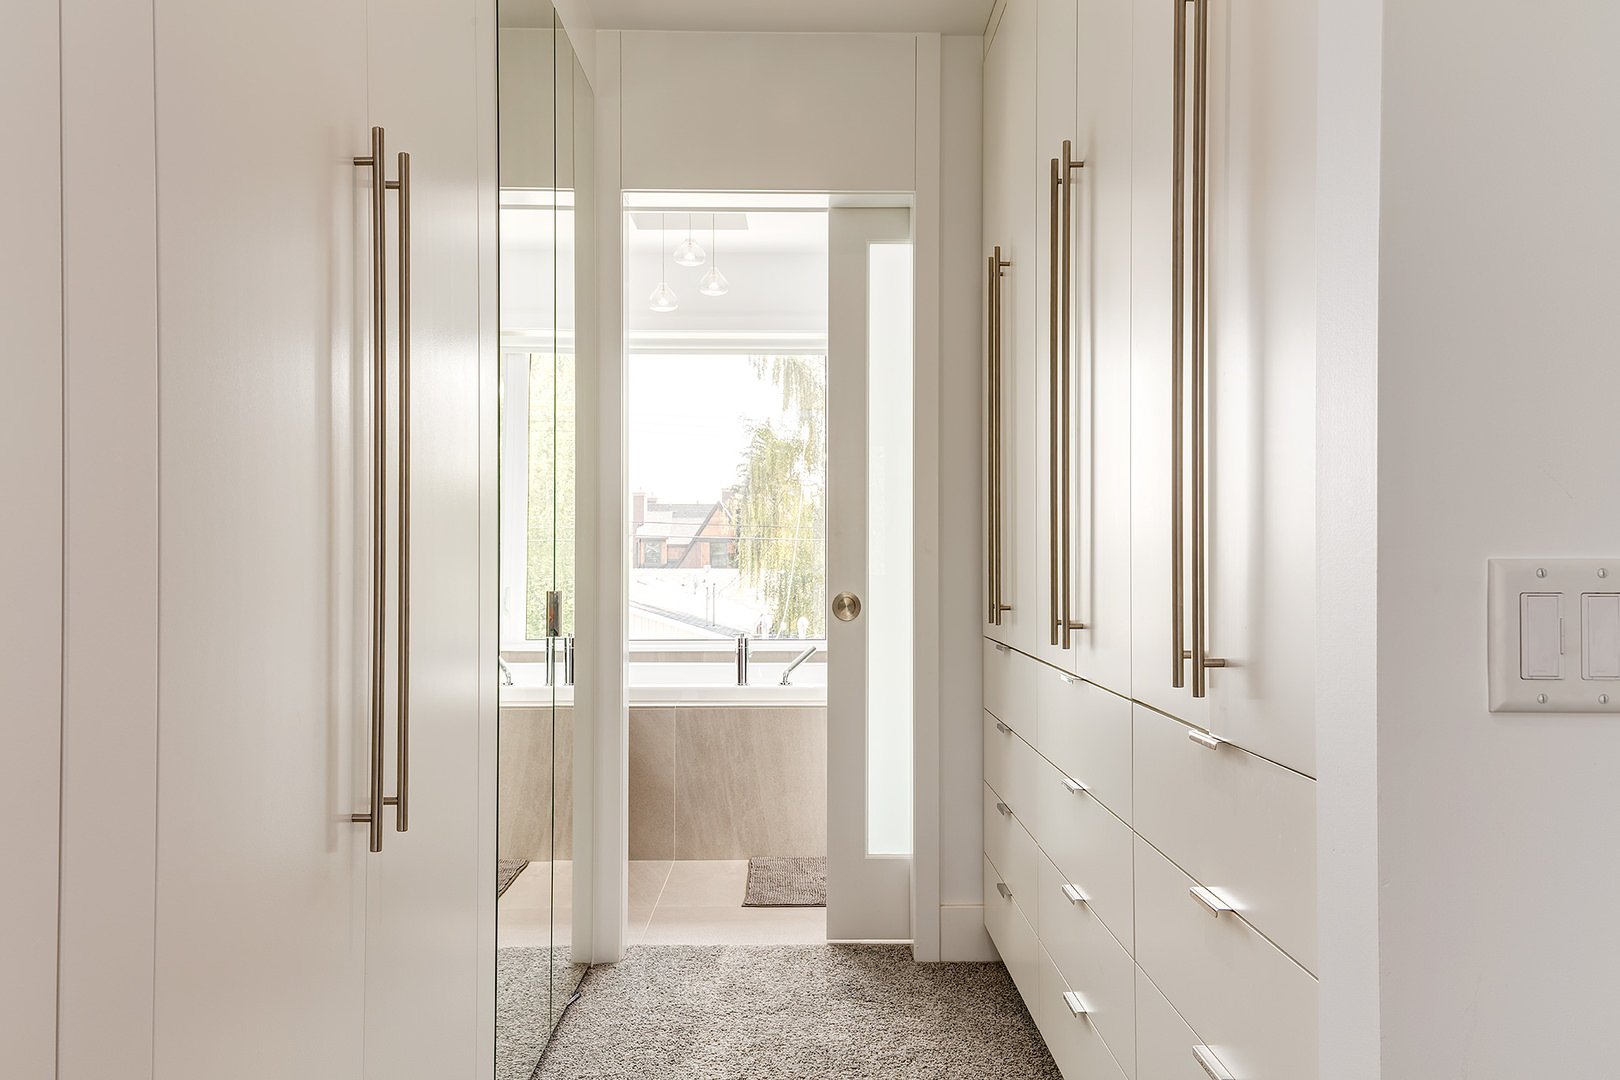 This hallway is entirely white and bright with white floor to ceiling cabinet on both sides, contrasting grey textured rug on the floor and glass door on the end.